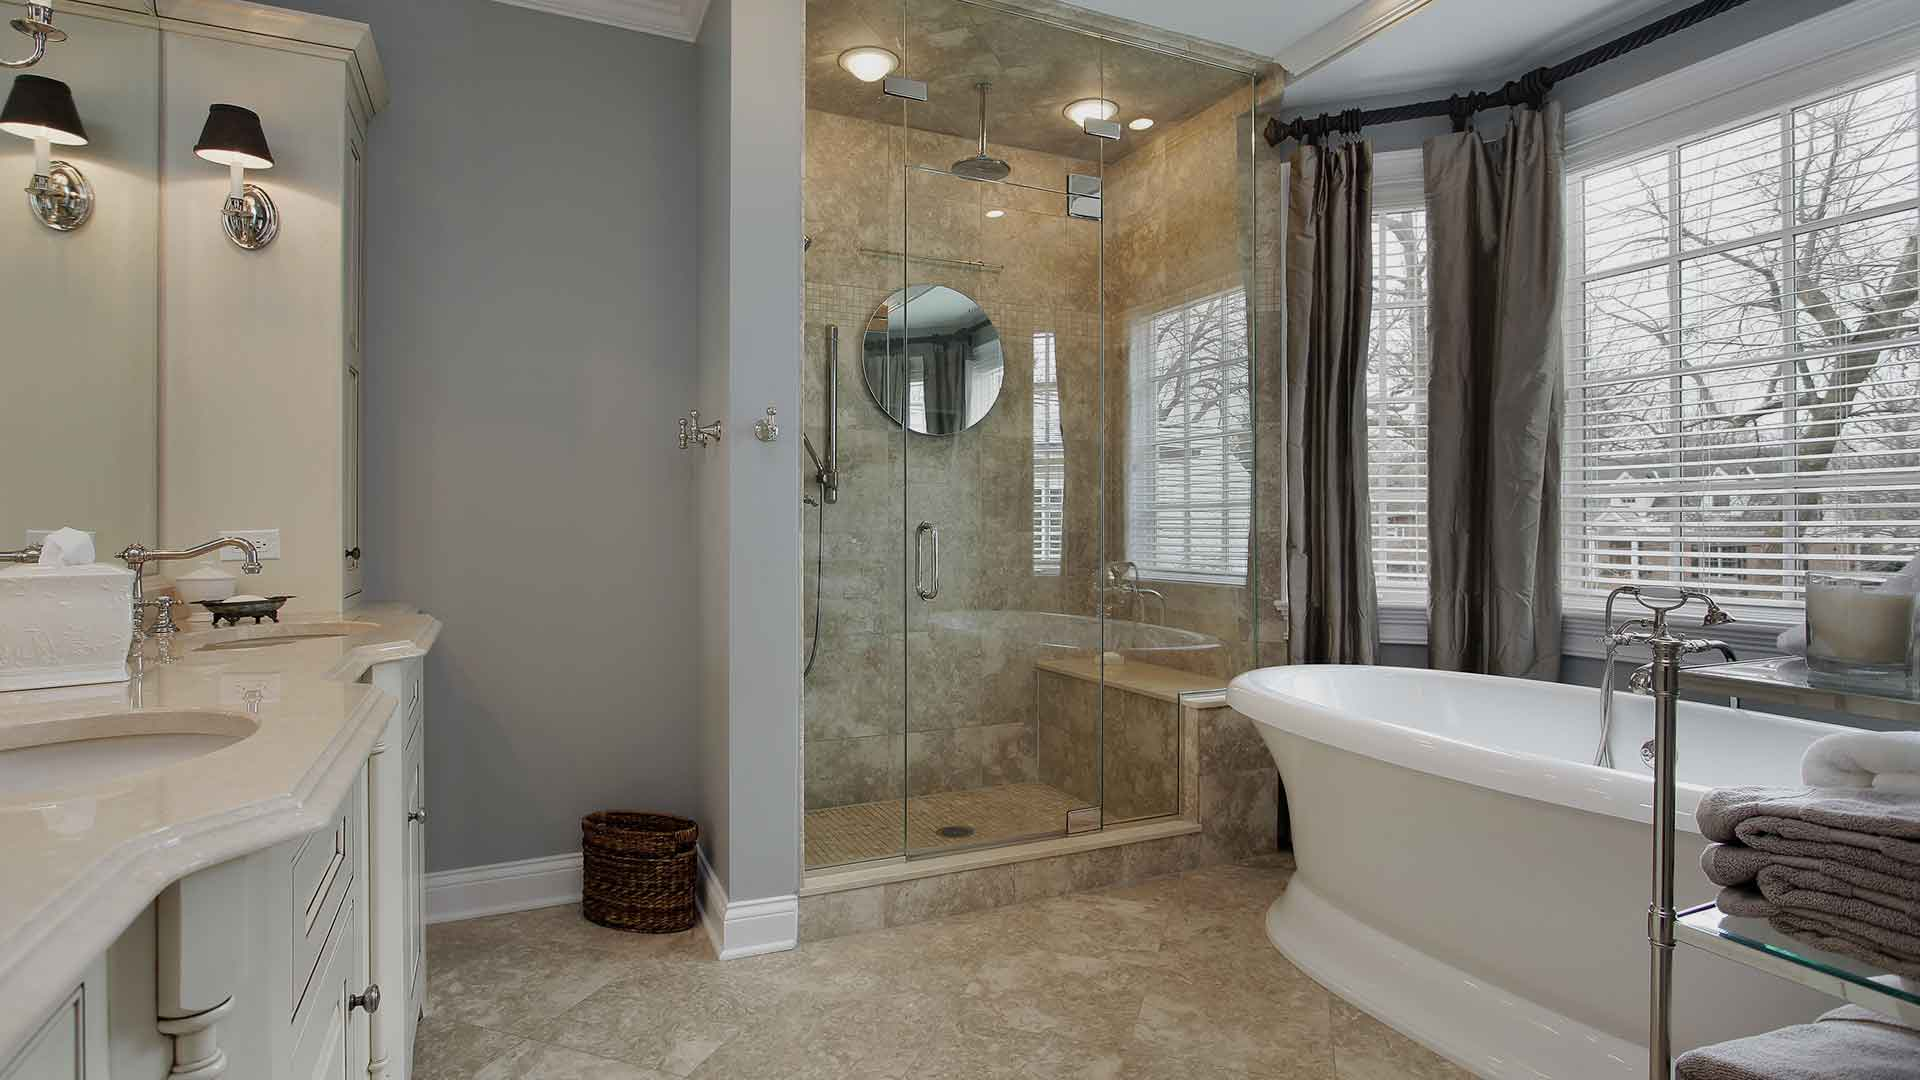 Bathroom Remodeling Fairfield Ct baybrook remodelers inc.